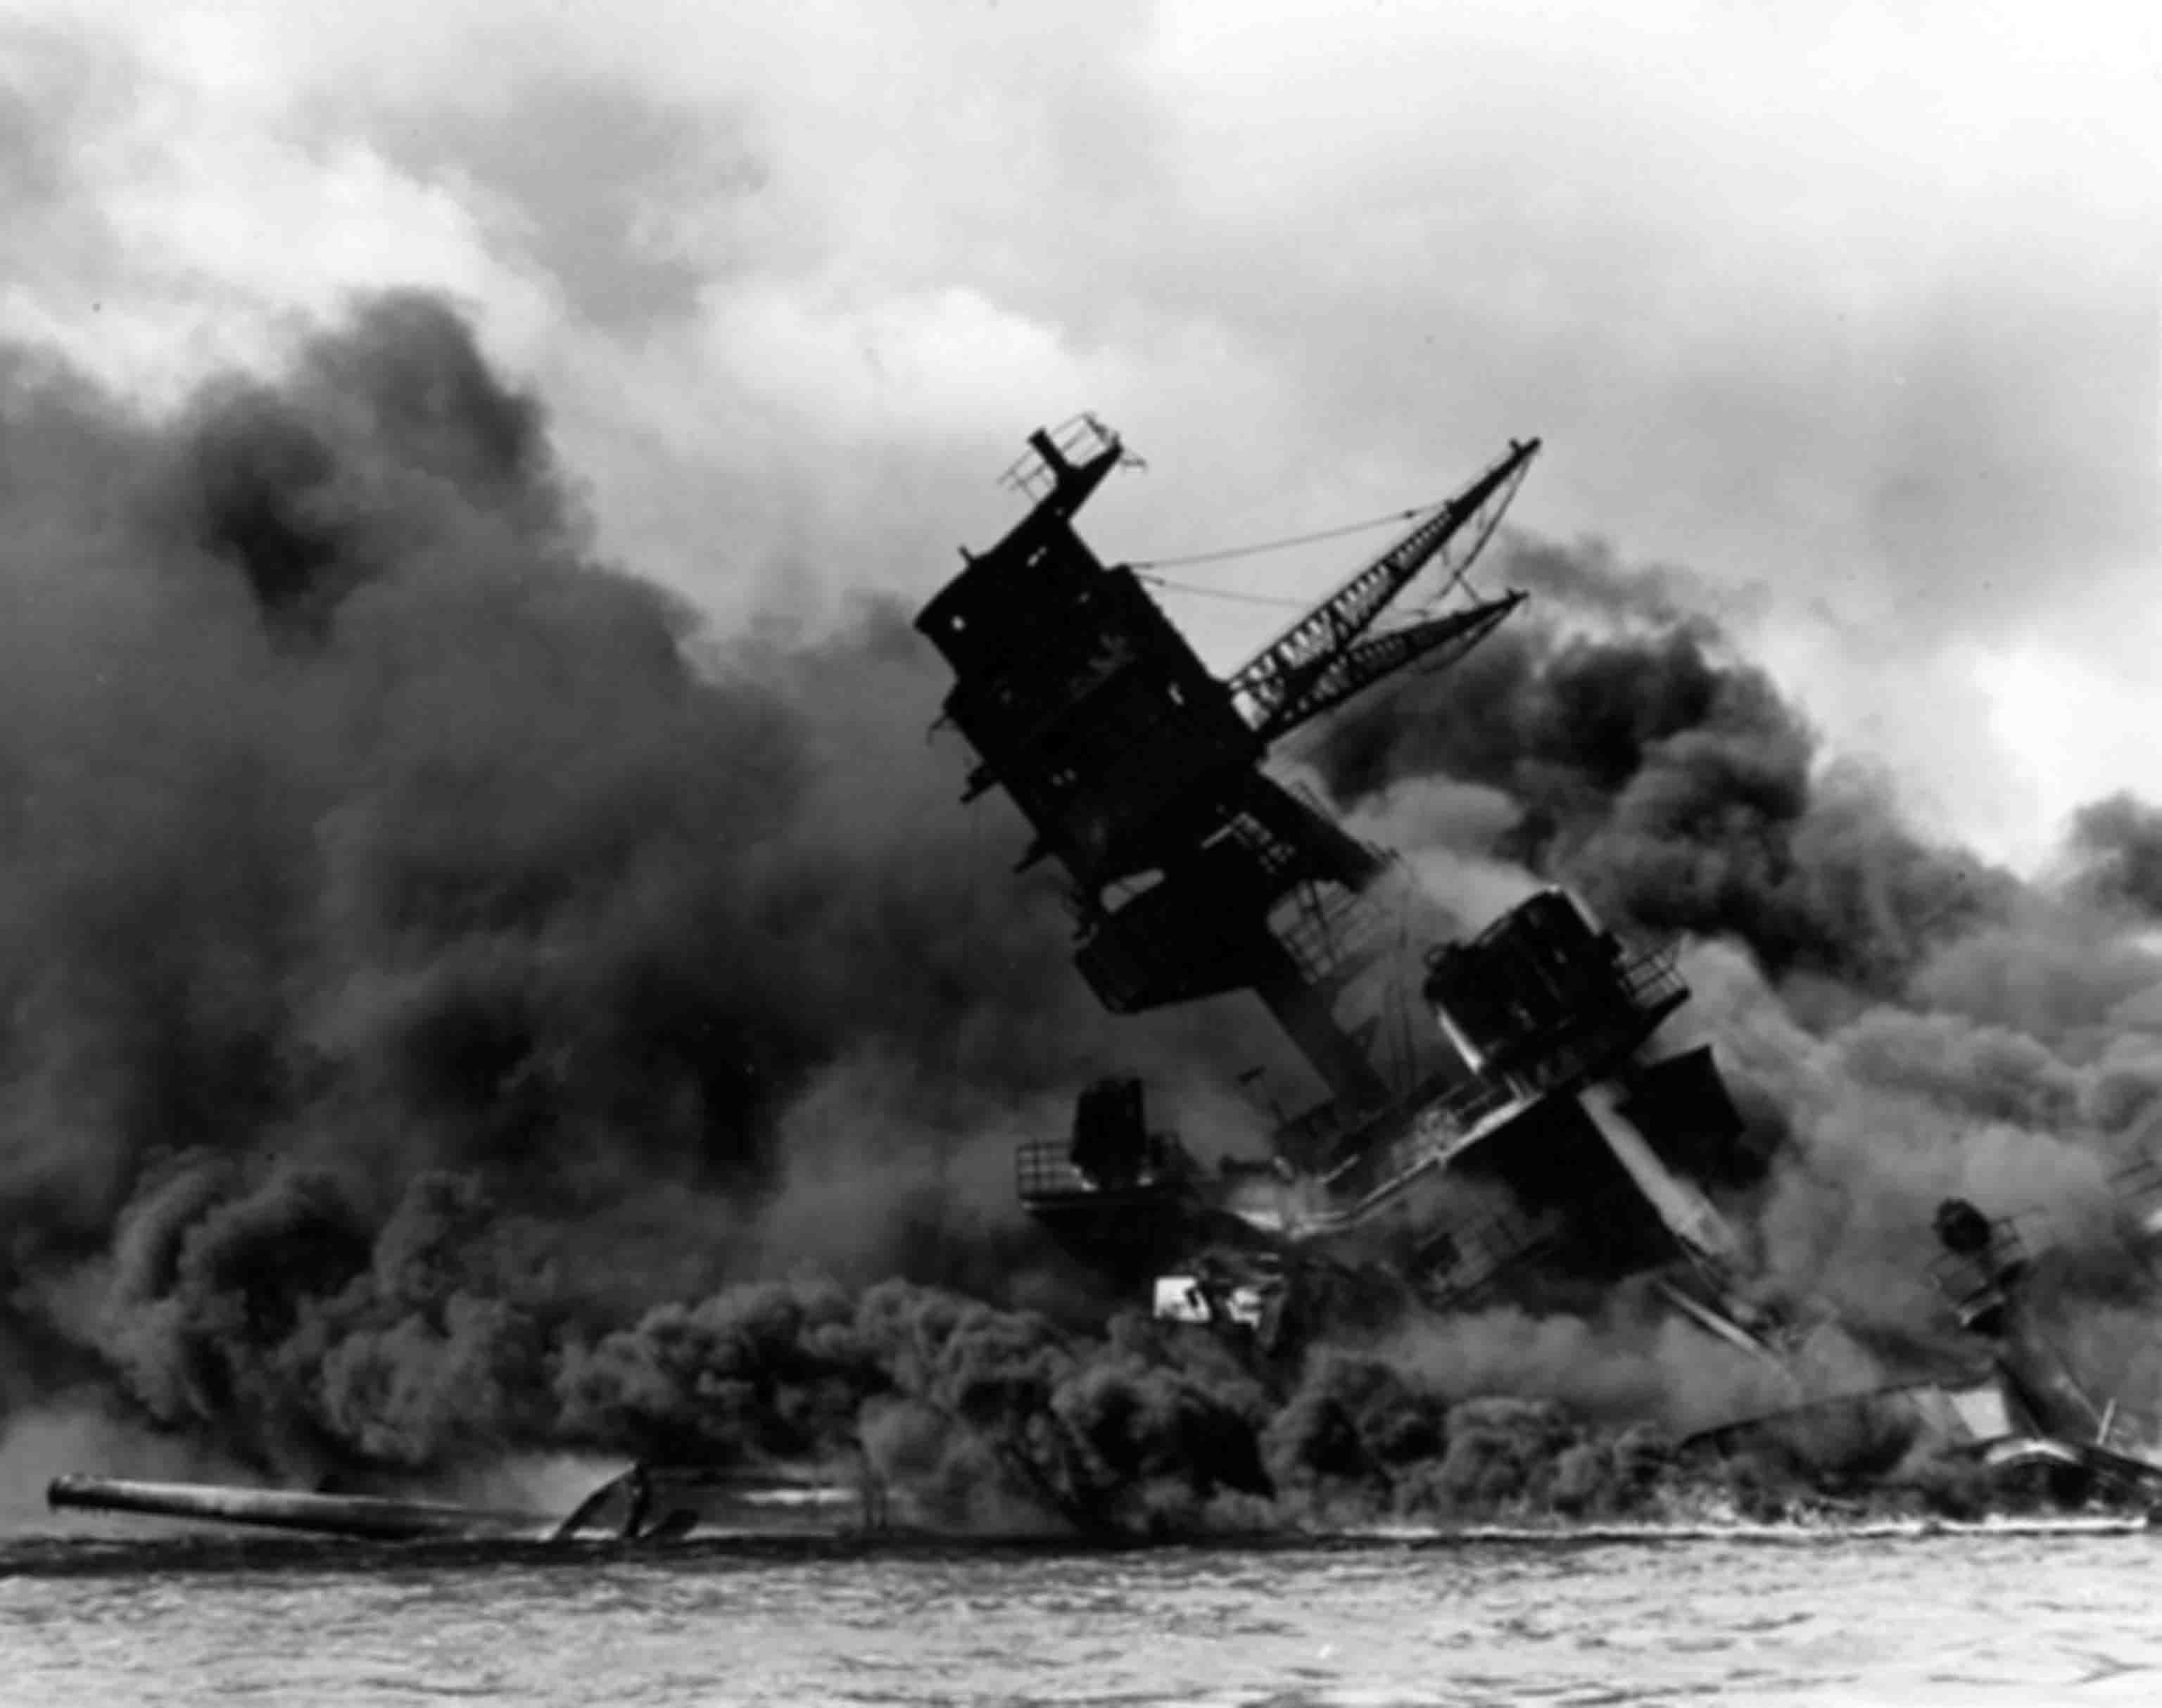 World War 2: battleship Arizona